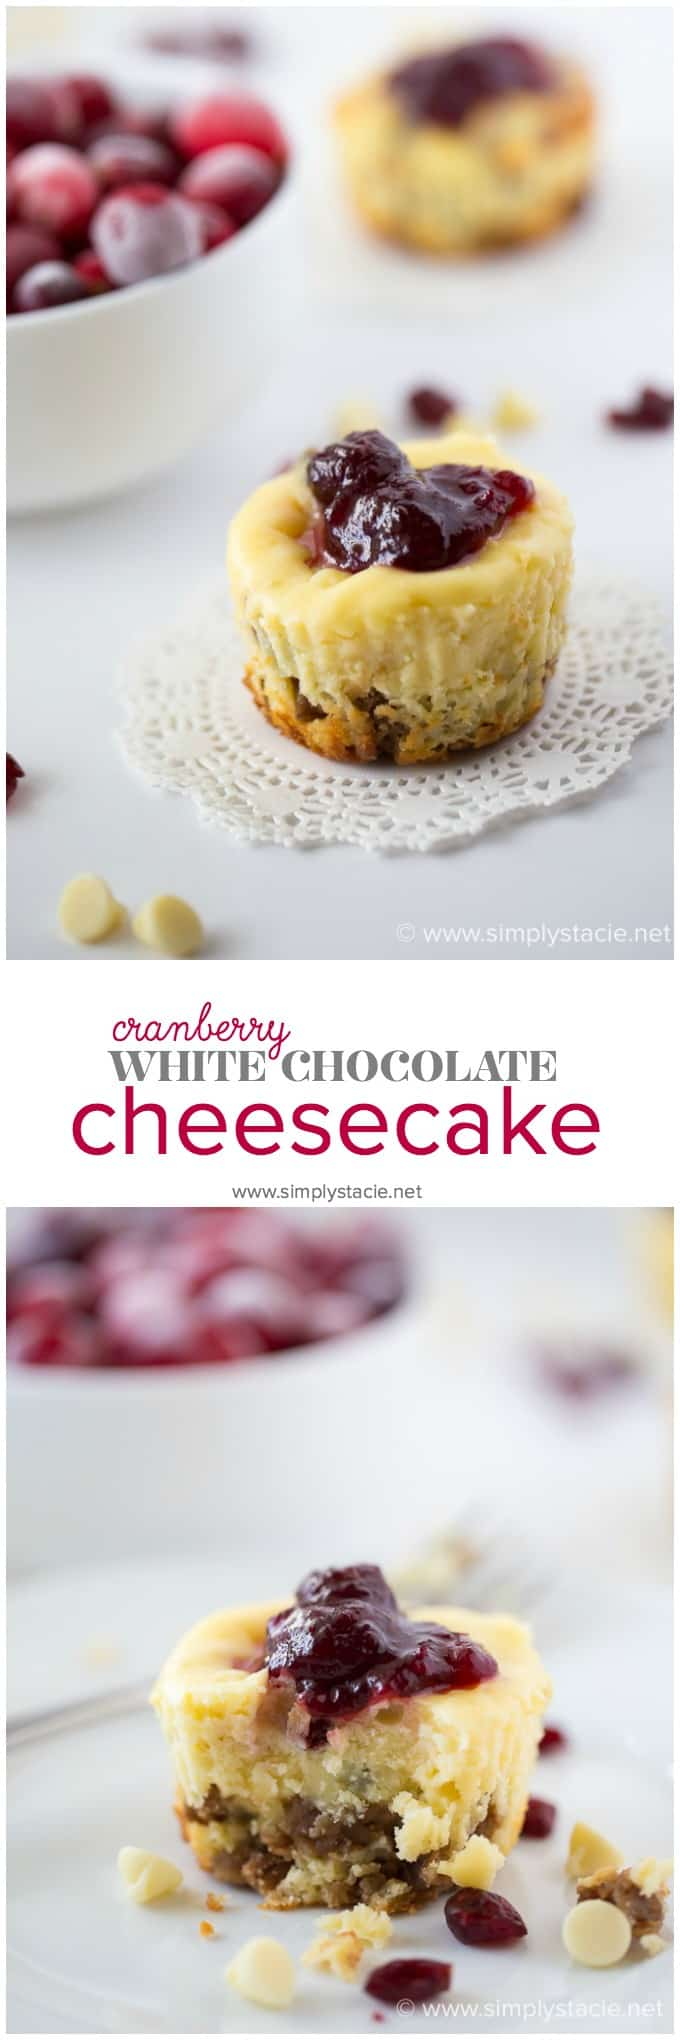 Cranberry White Chocolate Cheesecake - A festive dessert that's mini in size, but huge on flavour! Rich cheesecake filling packed with white chocolate chips and cranberries nestled on a chocolate granola crust.